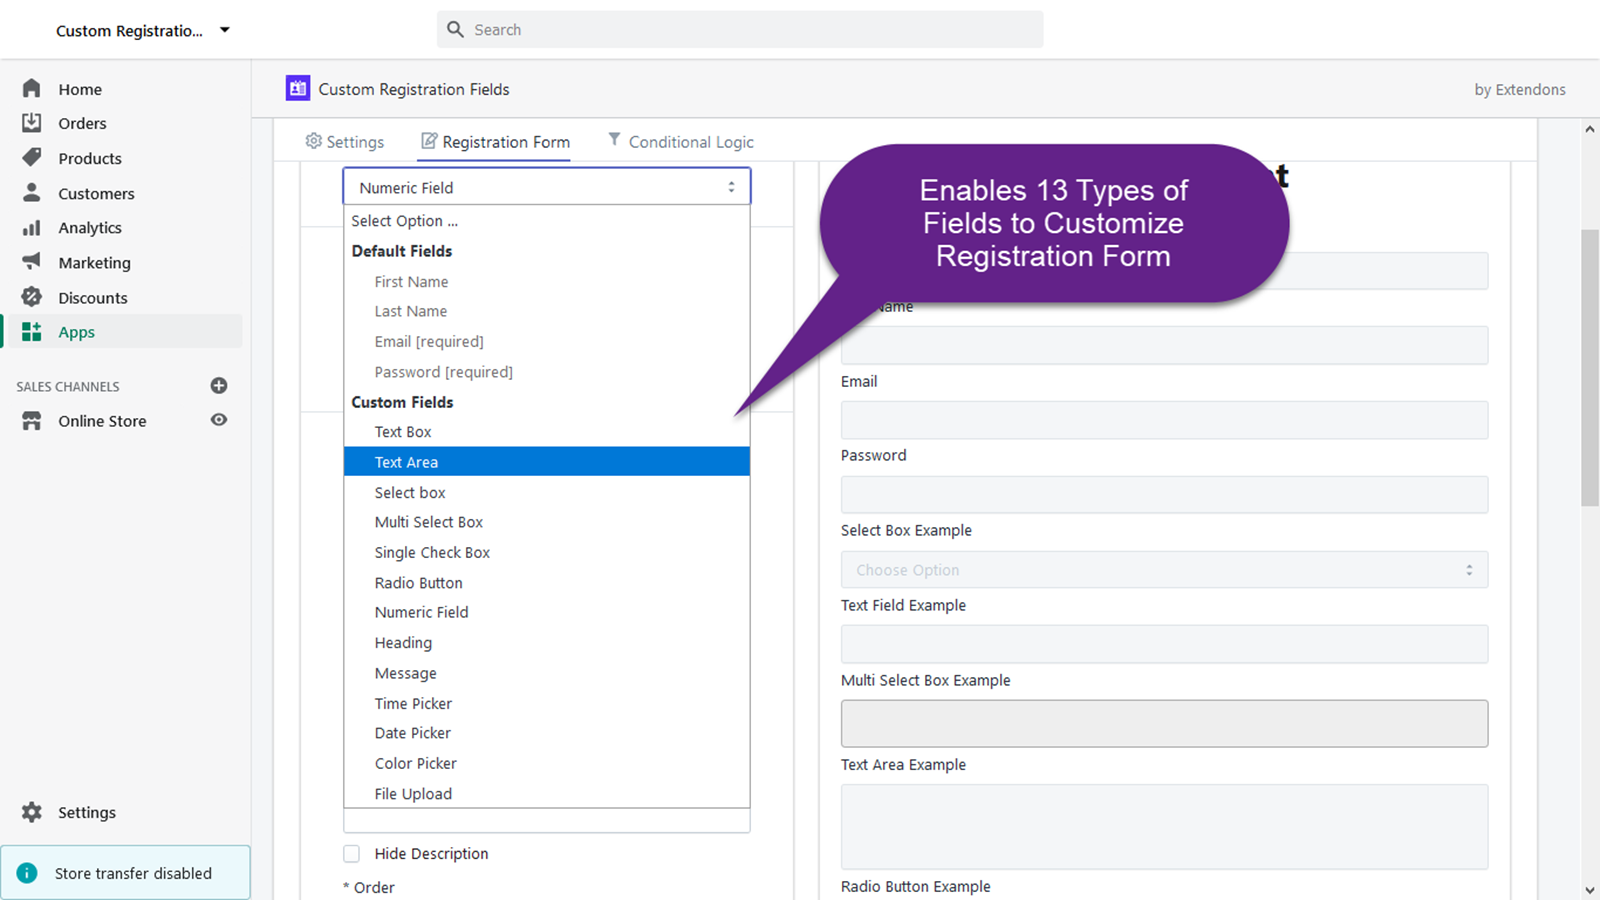 Enables 13 Types of Fields to Customize Registration Form